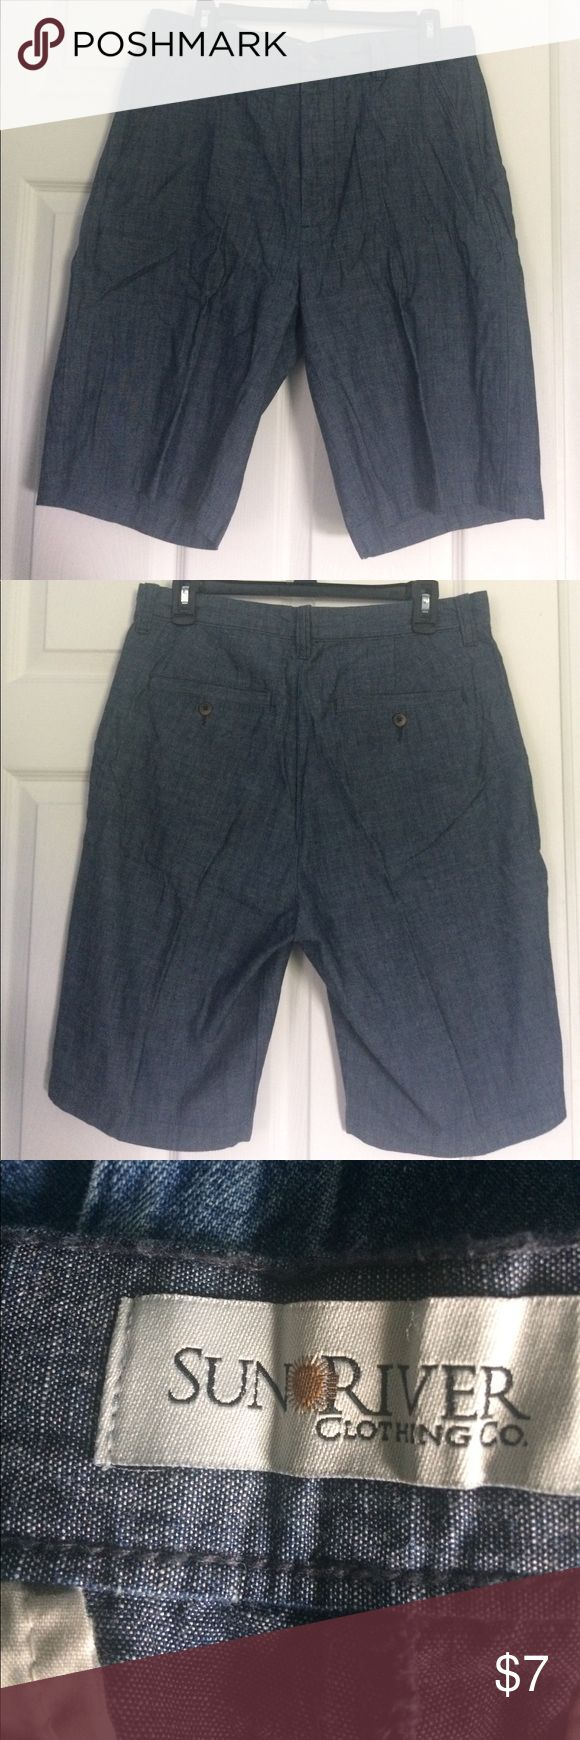 Sun river men's dress shorts NWOT sun river clothing company Gary dress shorts. Waist is a size 32. Zipper fly and fabric makeup is 100% cotton. Bundles and offers are always welcome. HAPPY POSHING POSHERS sun river clothing co. Shorts